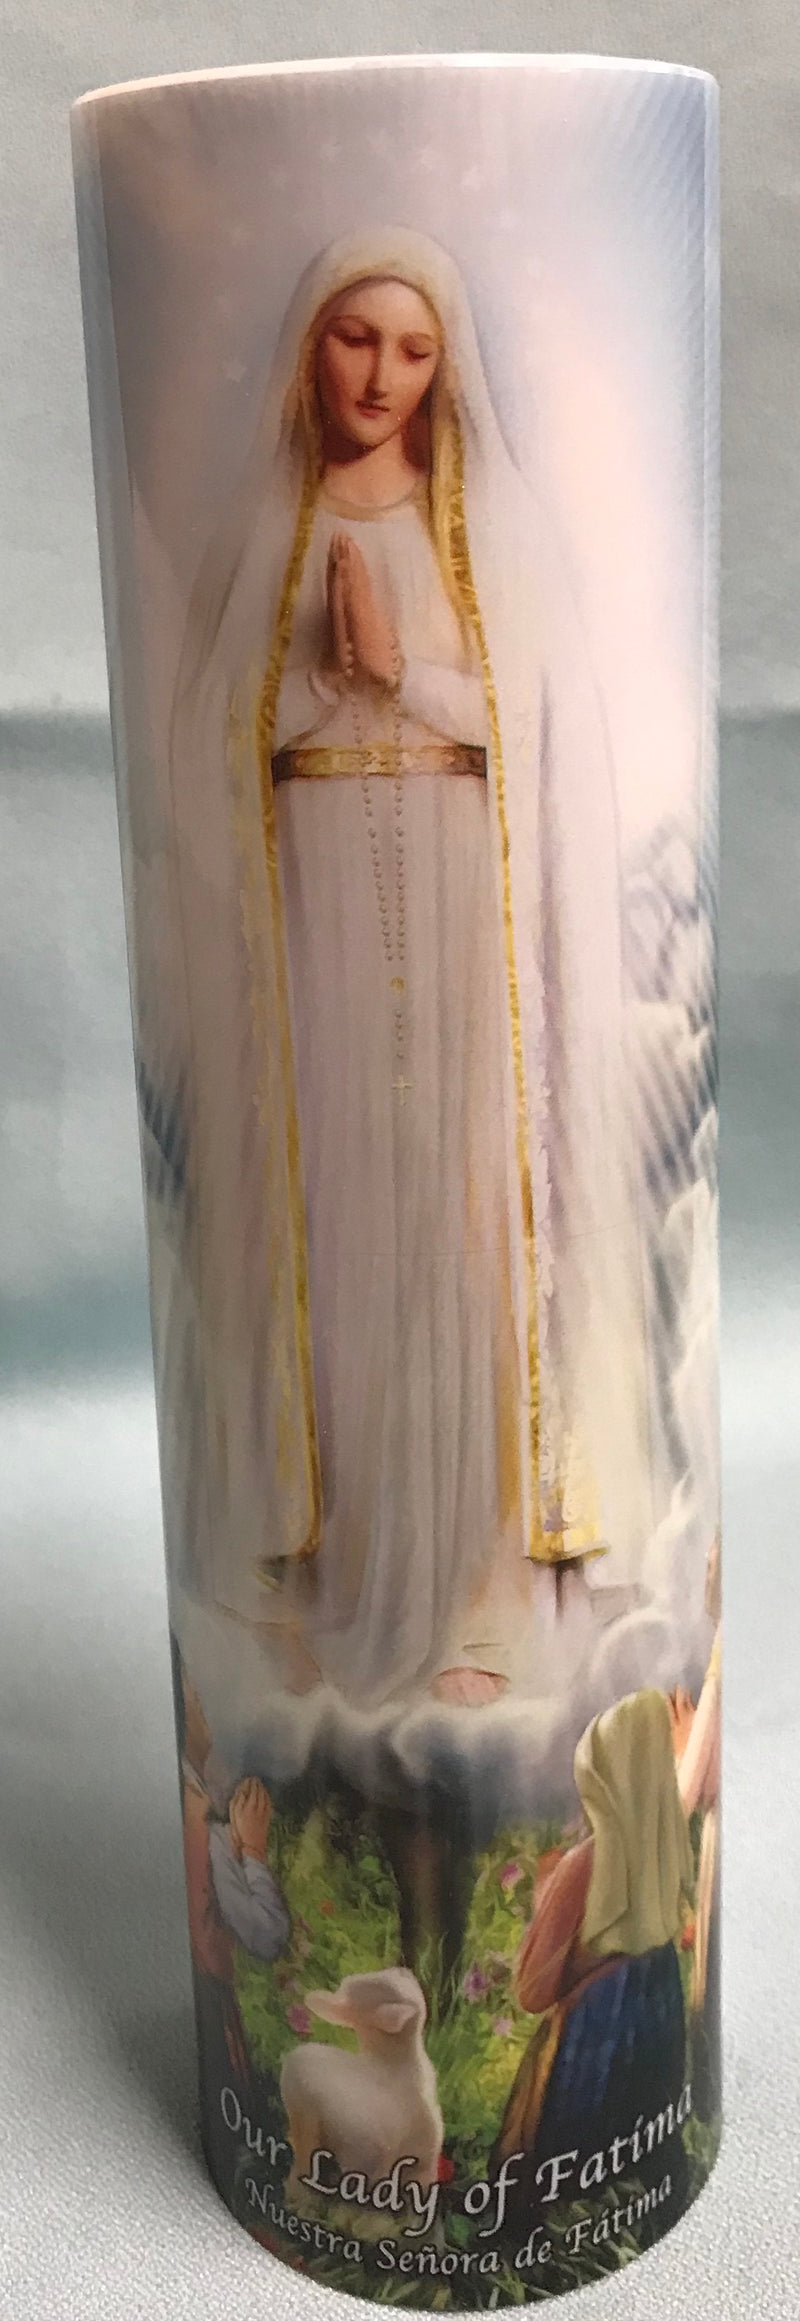 LED OUR LADY OF FATIMA CANDLE